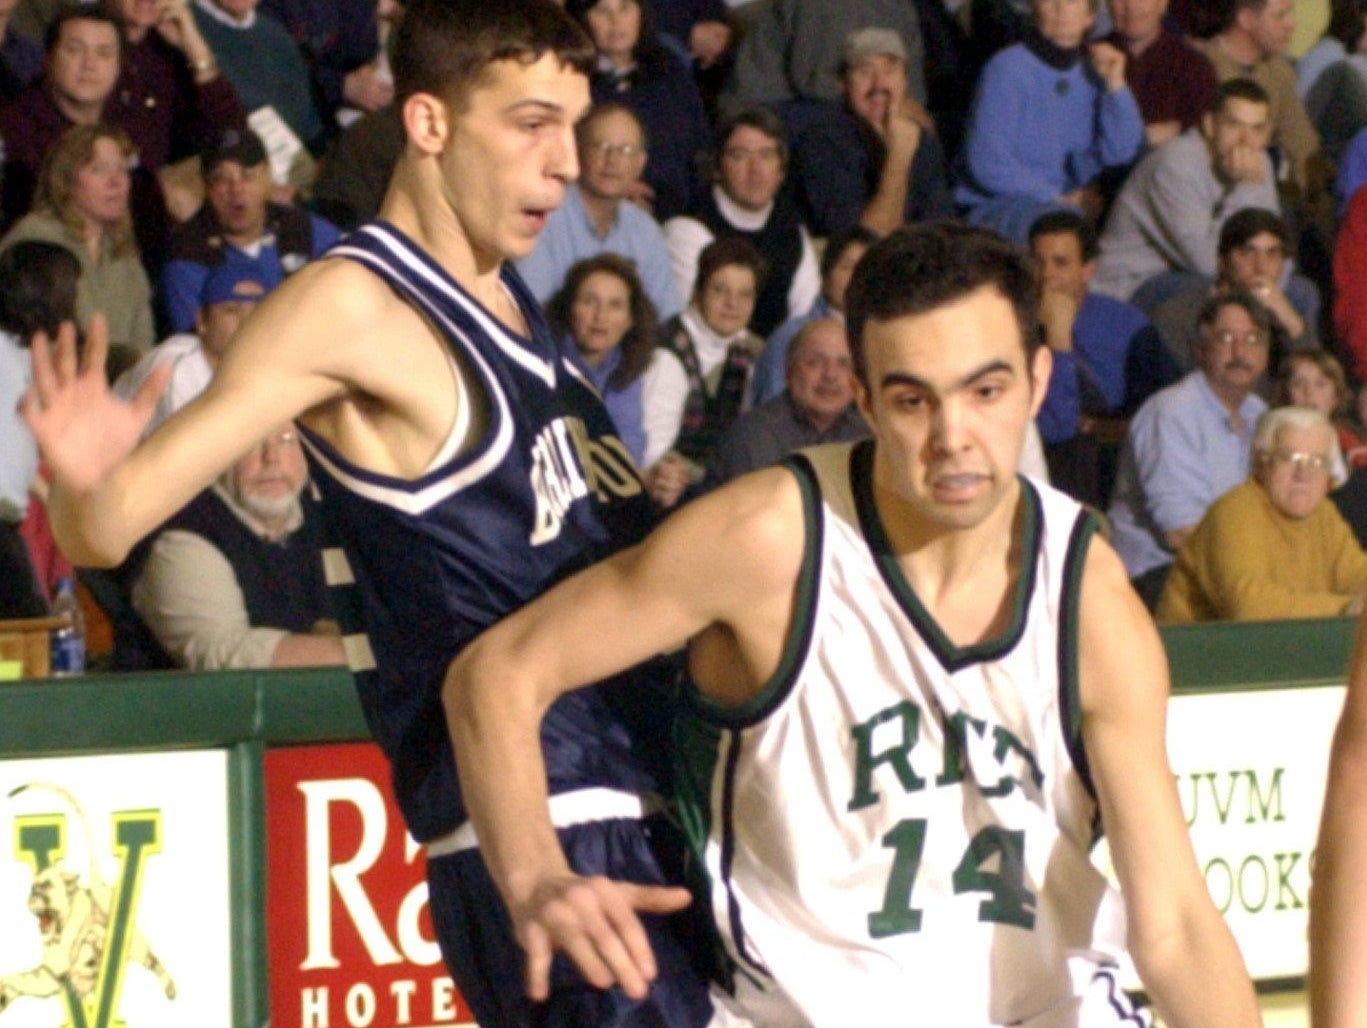 Kyle Cieplicki, seen in action in 2003, is one of nine Rice Memorial High School alums who will be inducted into the school's athletic hall of fame this weekend.